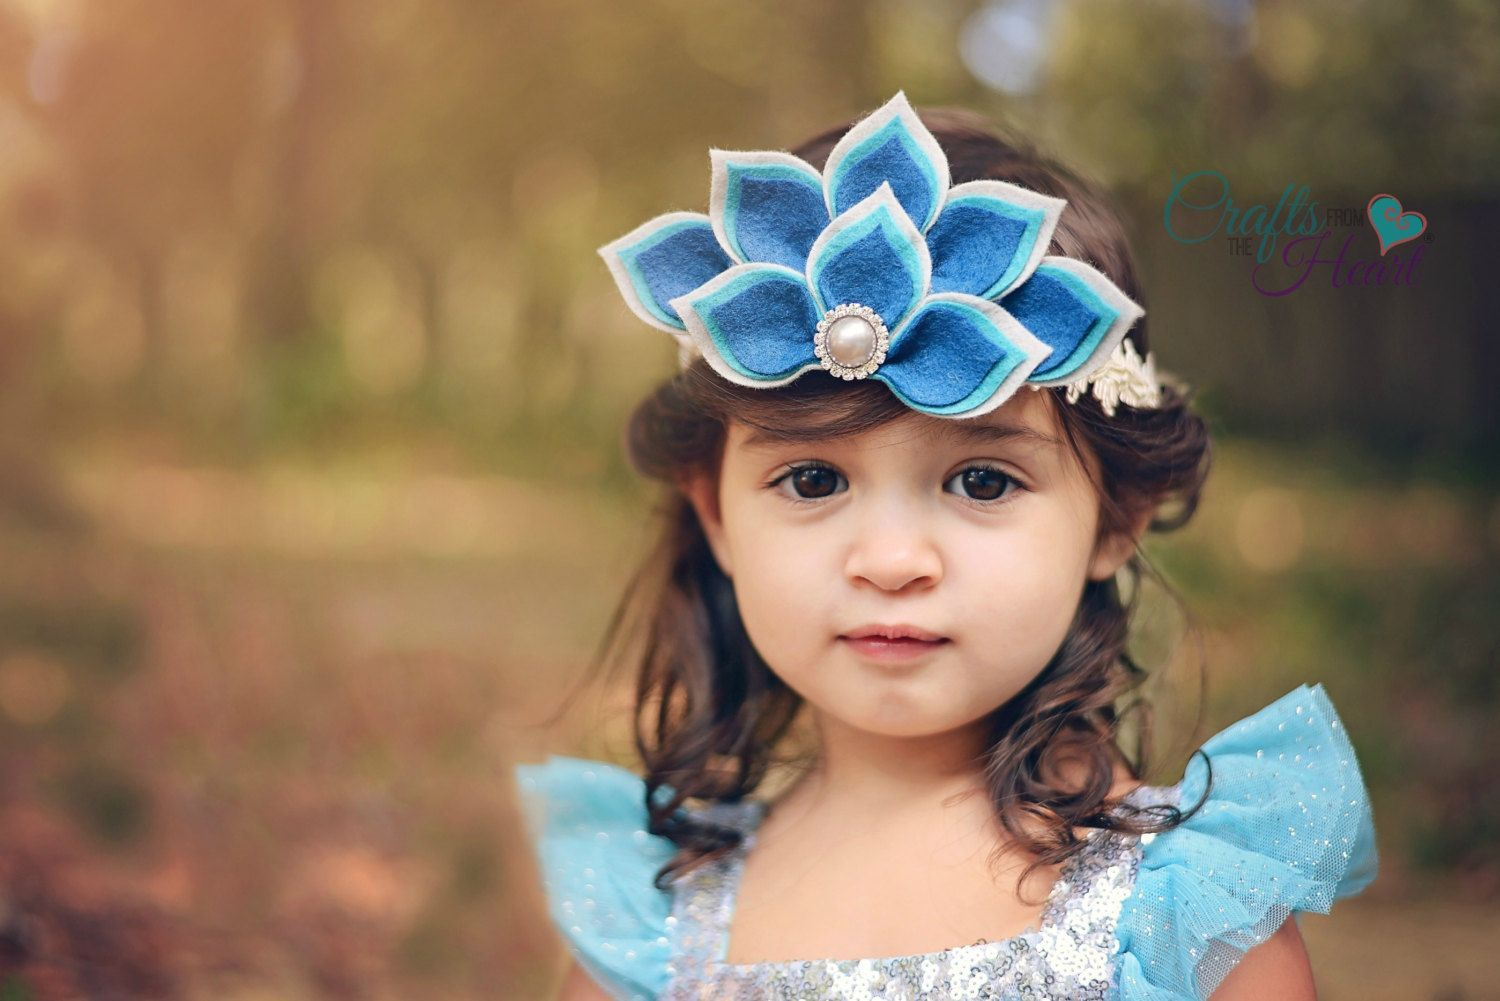 Gifts for Kids - Felt Crown Headband - Felt Halo - Felt Tiara - Pageant Halo - Pageant Headband - Tribal Felt Crown - Grey,Teal, Navy #feltcrown Felt Crown Headband - Felt Halo - Felt Tiara - Bohemian Felt Halo - Pageant Halo - Pageant Headband - Tribal Felt Crown - Grey, Teal, Navy by PACraftsfromtheHeart on Etsy #feltcrown